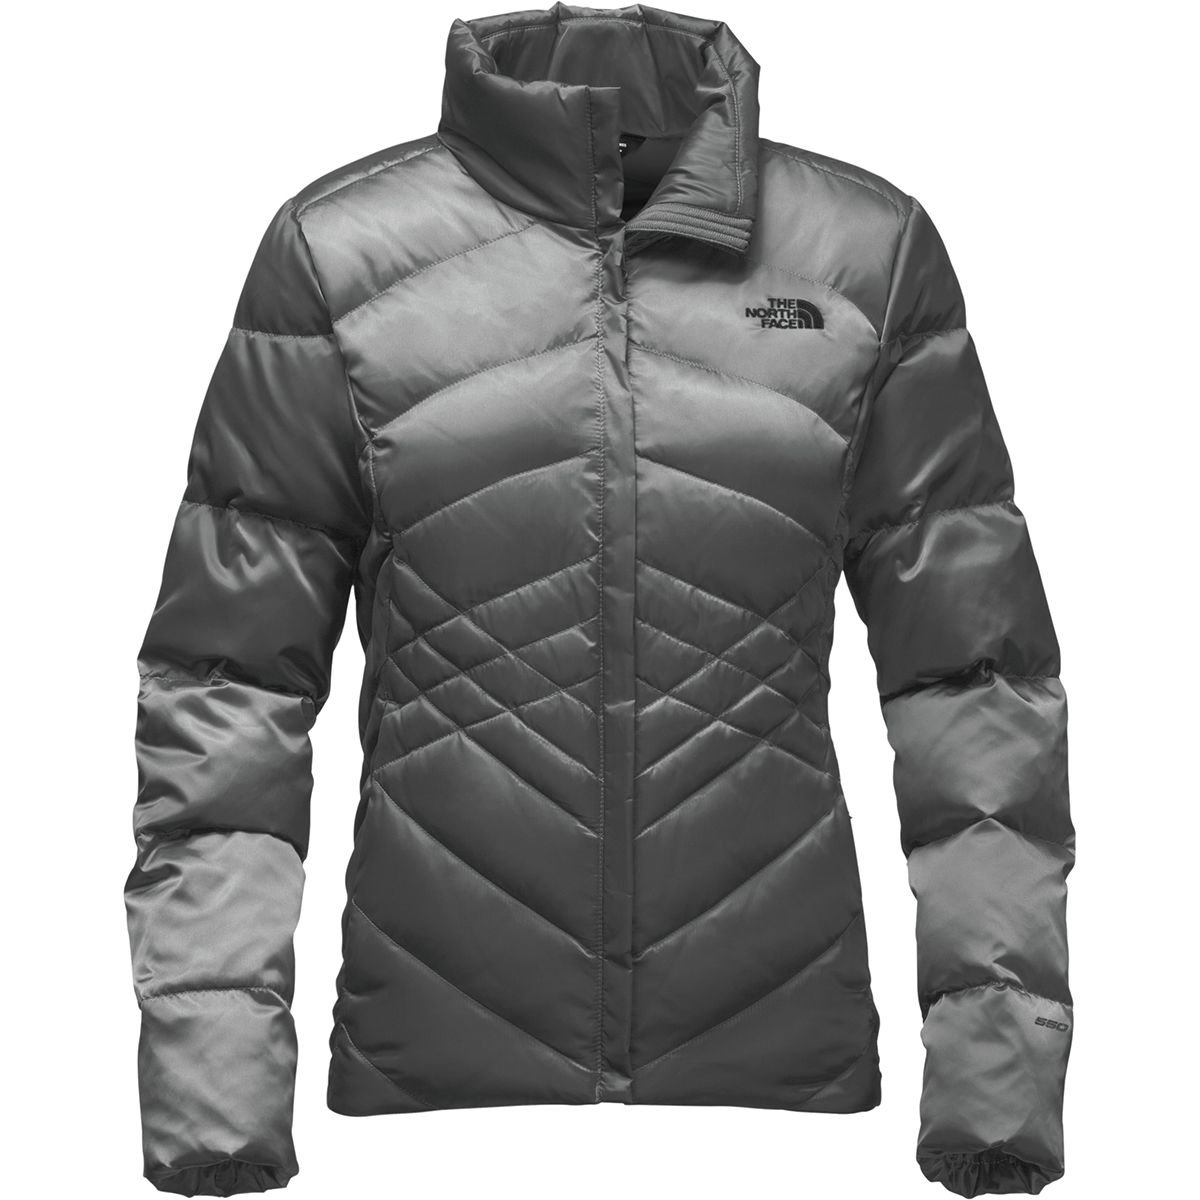 THE NORTH FACE Womens Aconcagua Jacket  Amazon.ca  Sports   Outdoors be14a2ae1